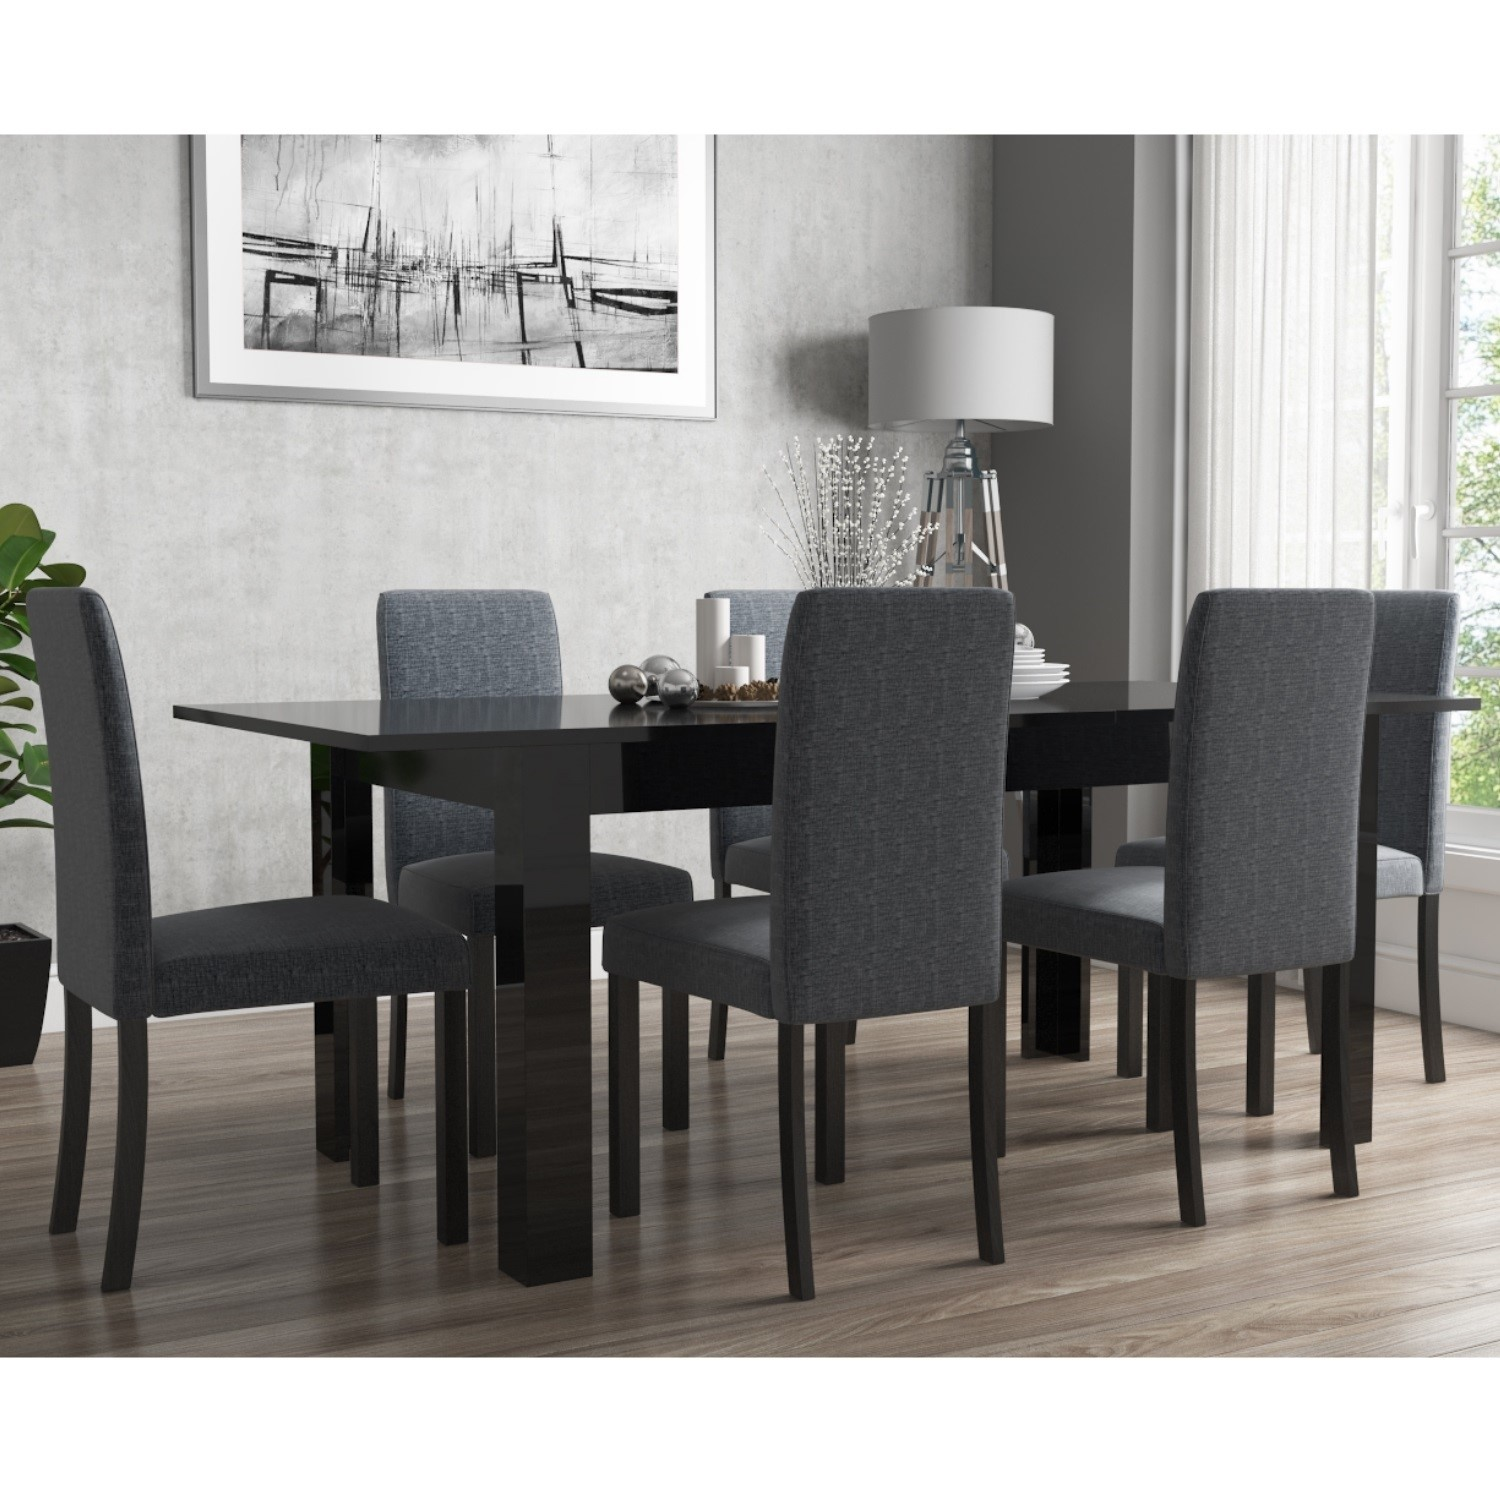 Picture of: Extendable Dining Table In Black High Gloss With 6 Grey Chairs Vivienne New Haven Furniture123